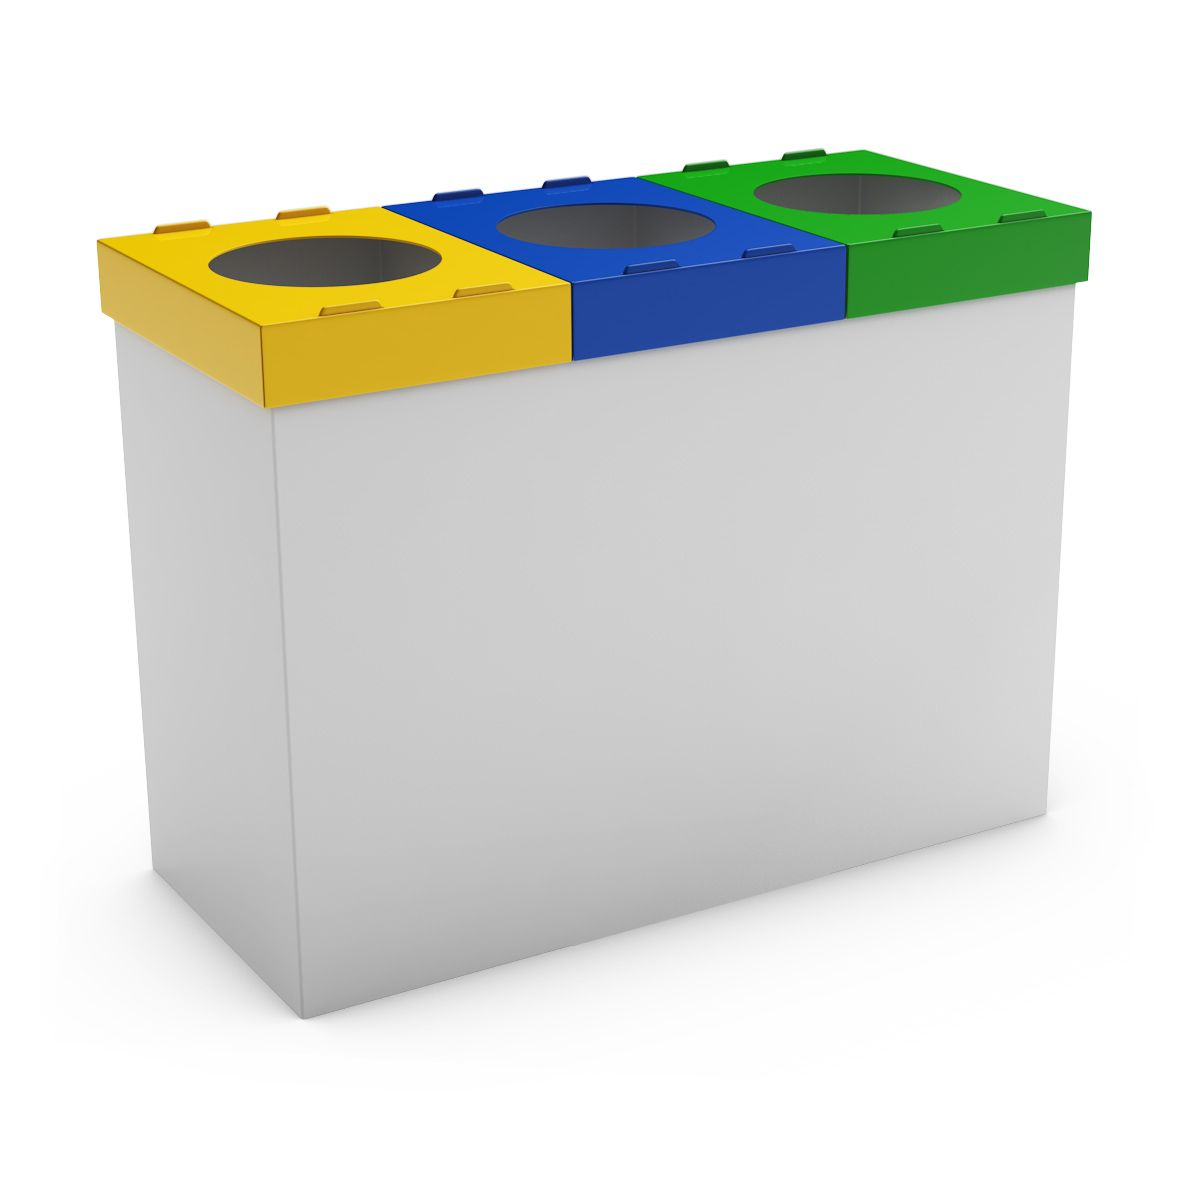 Mondo 3f White Waste Bin For Selective Sorting At Home 3 Compartments Sorting Recycling Bins Waste